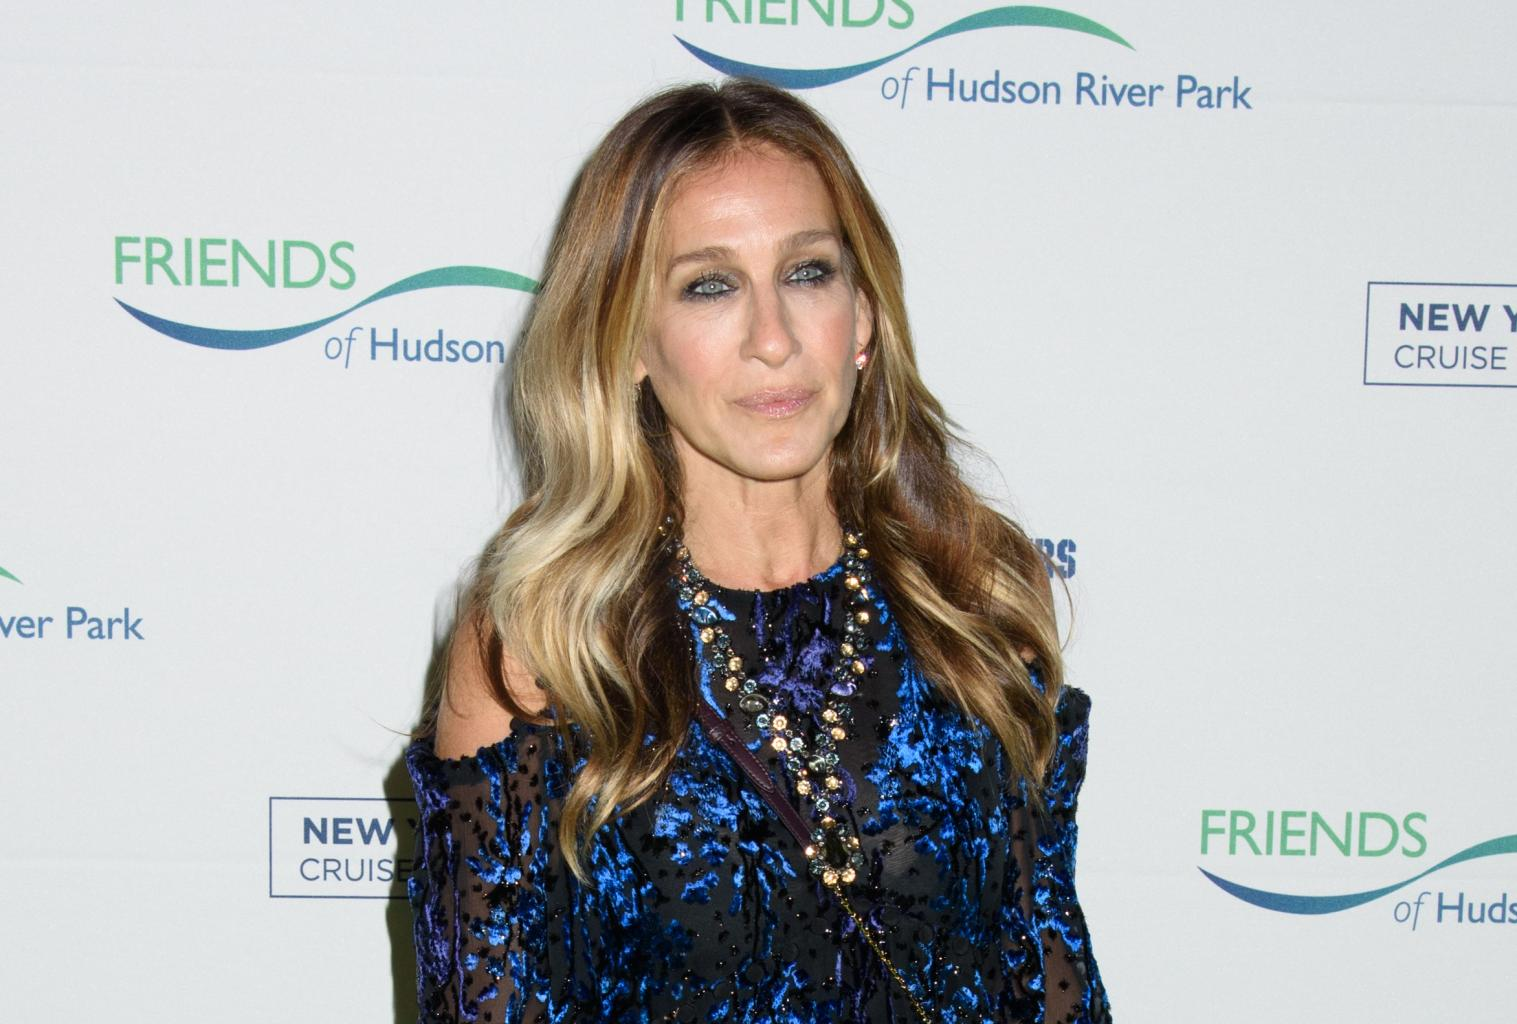 Exclusive: Sarah Jessica Parker Says She Wants To Make 'Hocus Pocus' And 'Sex And The City' Sequels